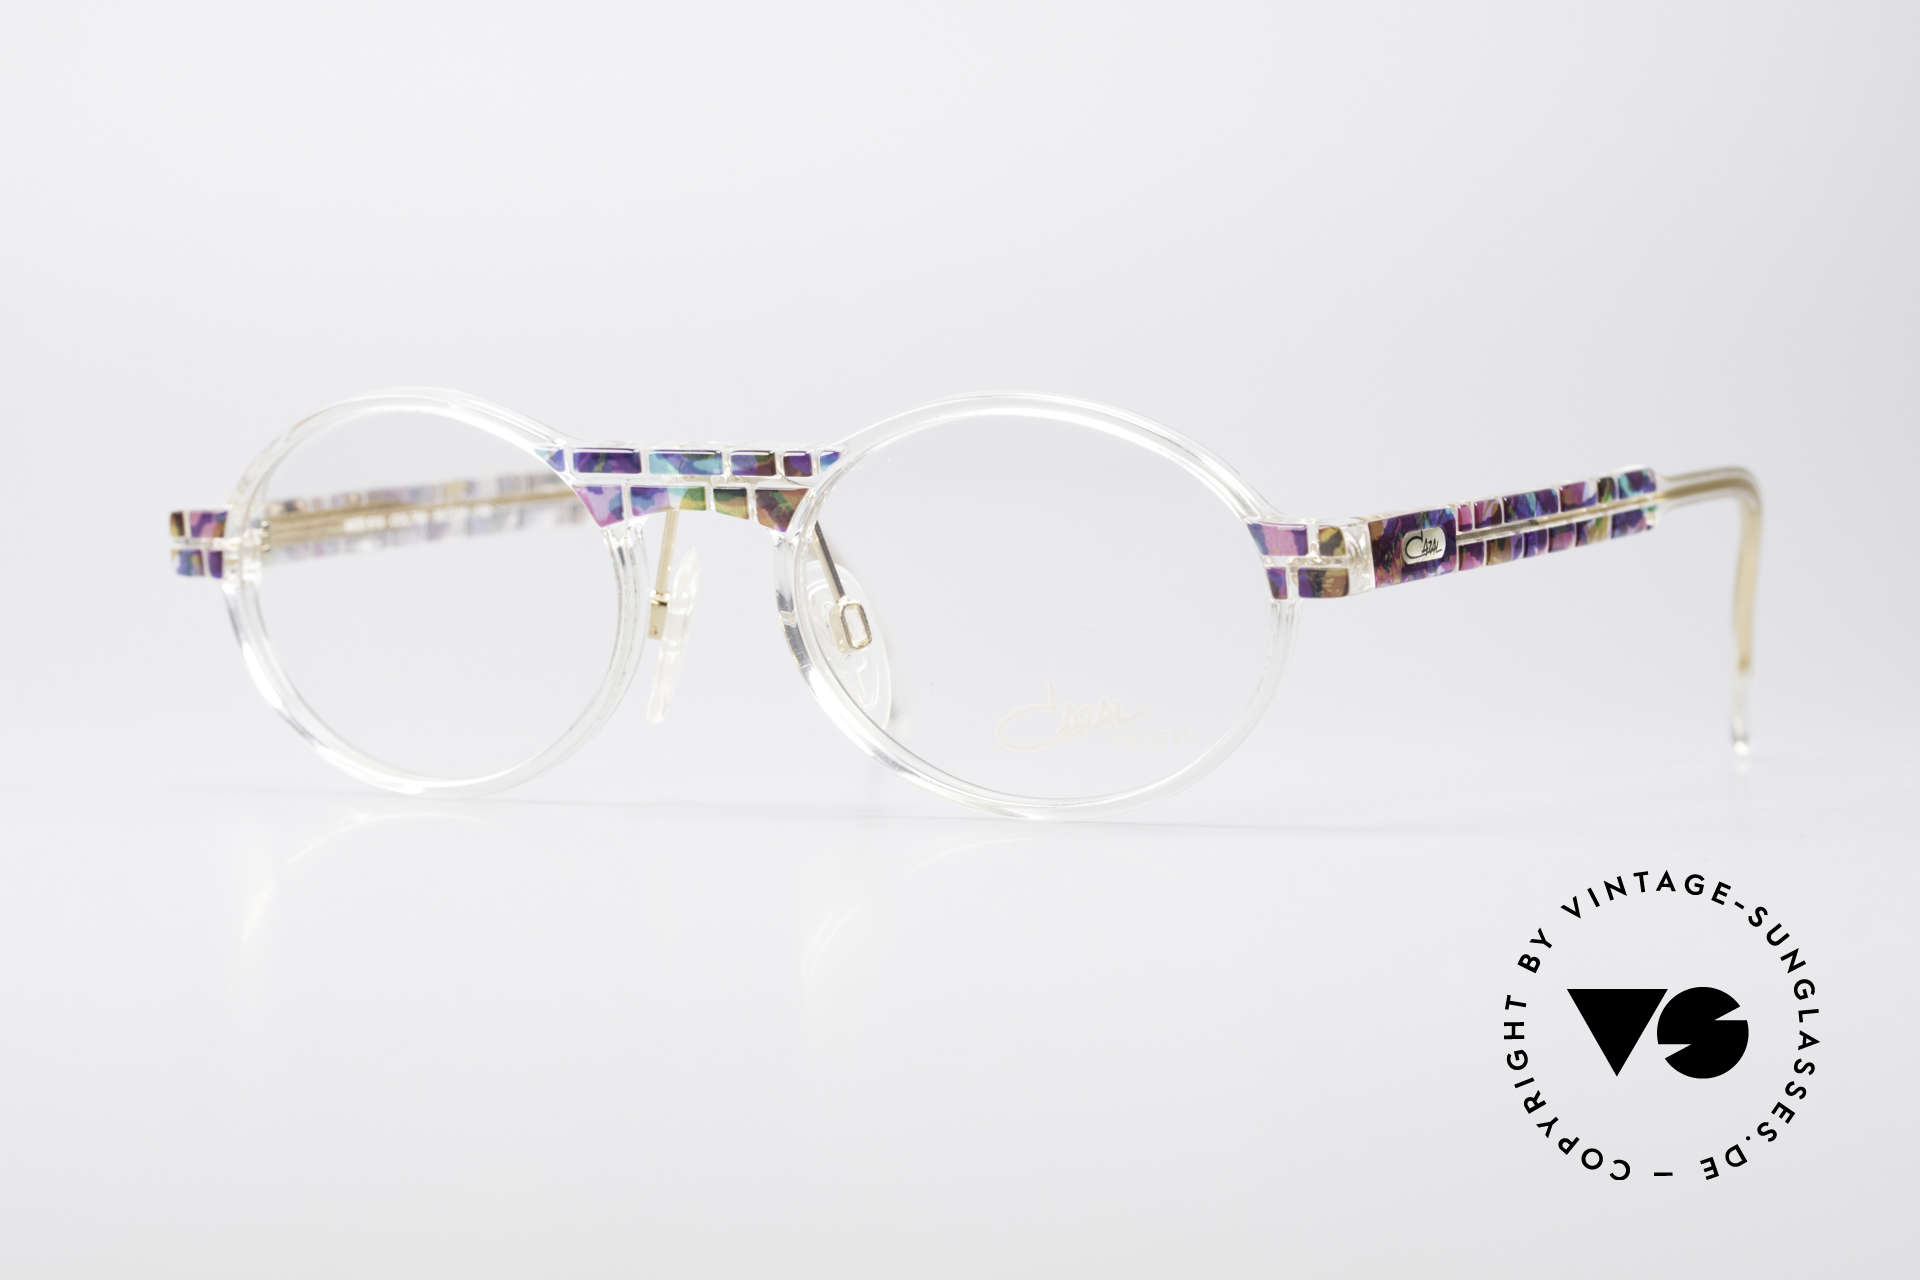 Cazal 510 Crystal Limited Vintage Glasses, rare Cazal vintage glasses of the Crystal 500's Series, Made for Men and Women